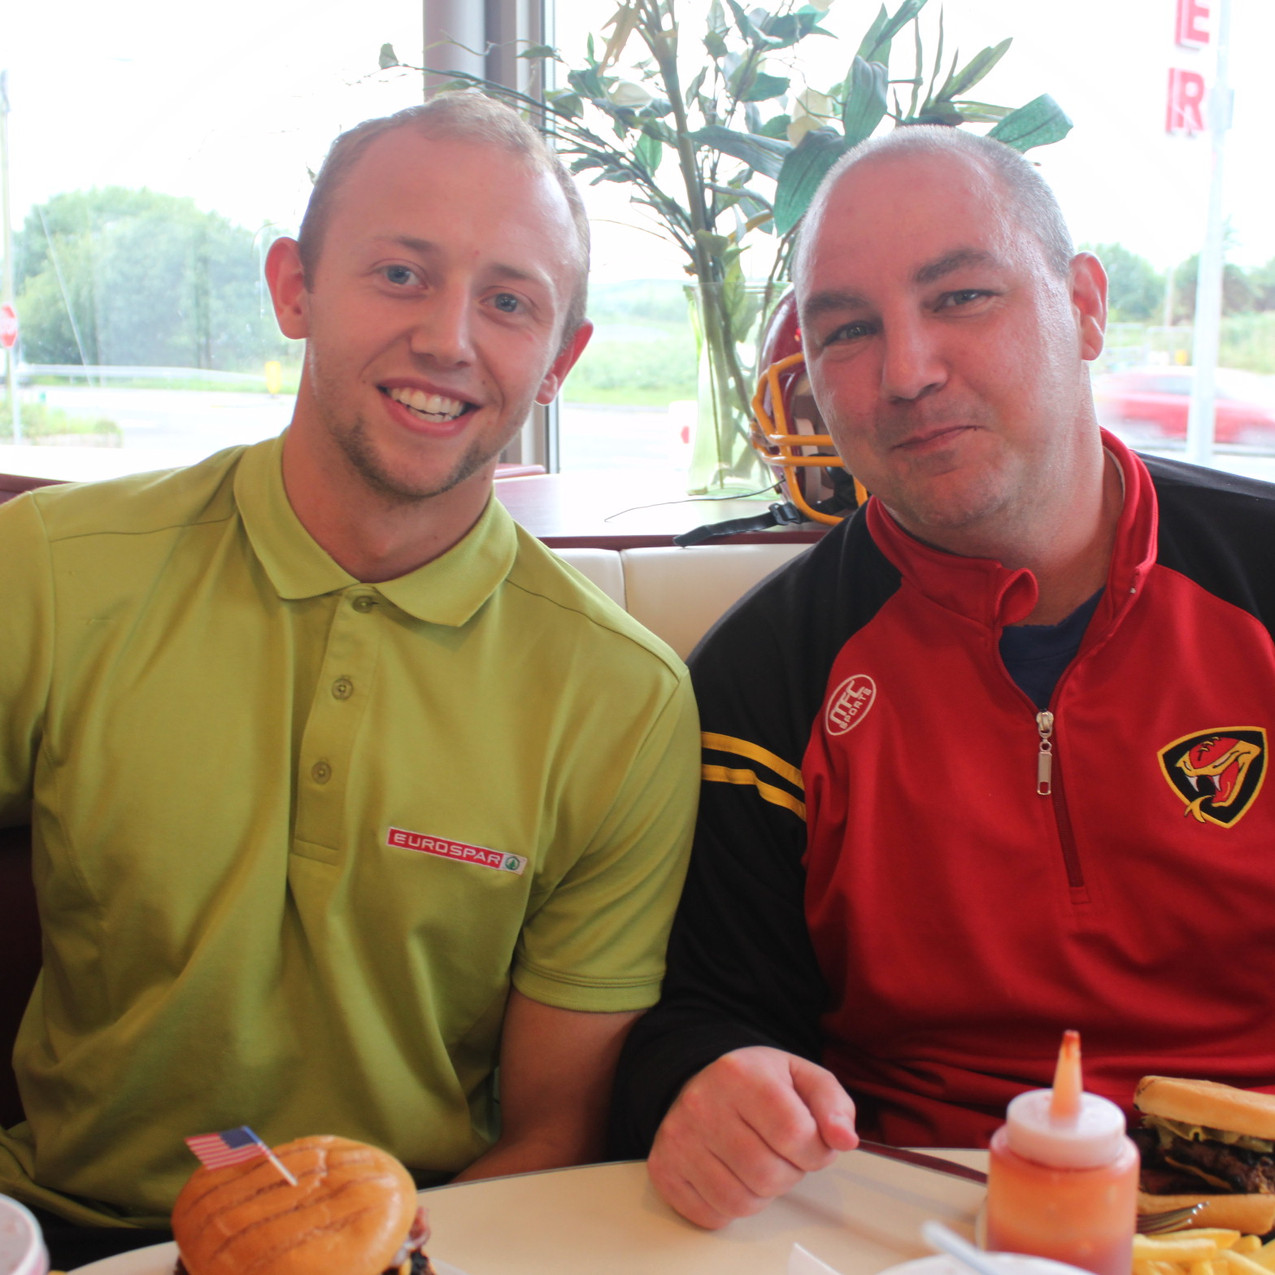 John Fullerton and Coach Brock enjoy a Viper Burger in Kernans Diner